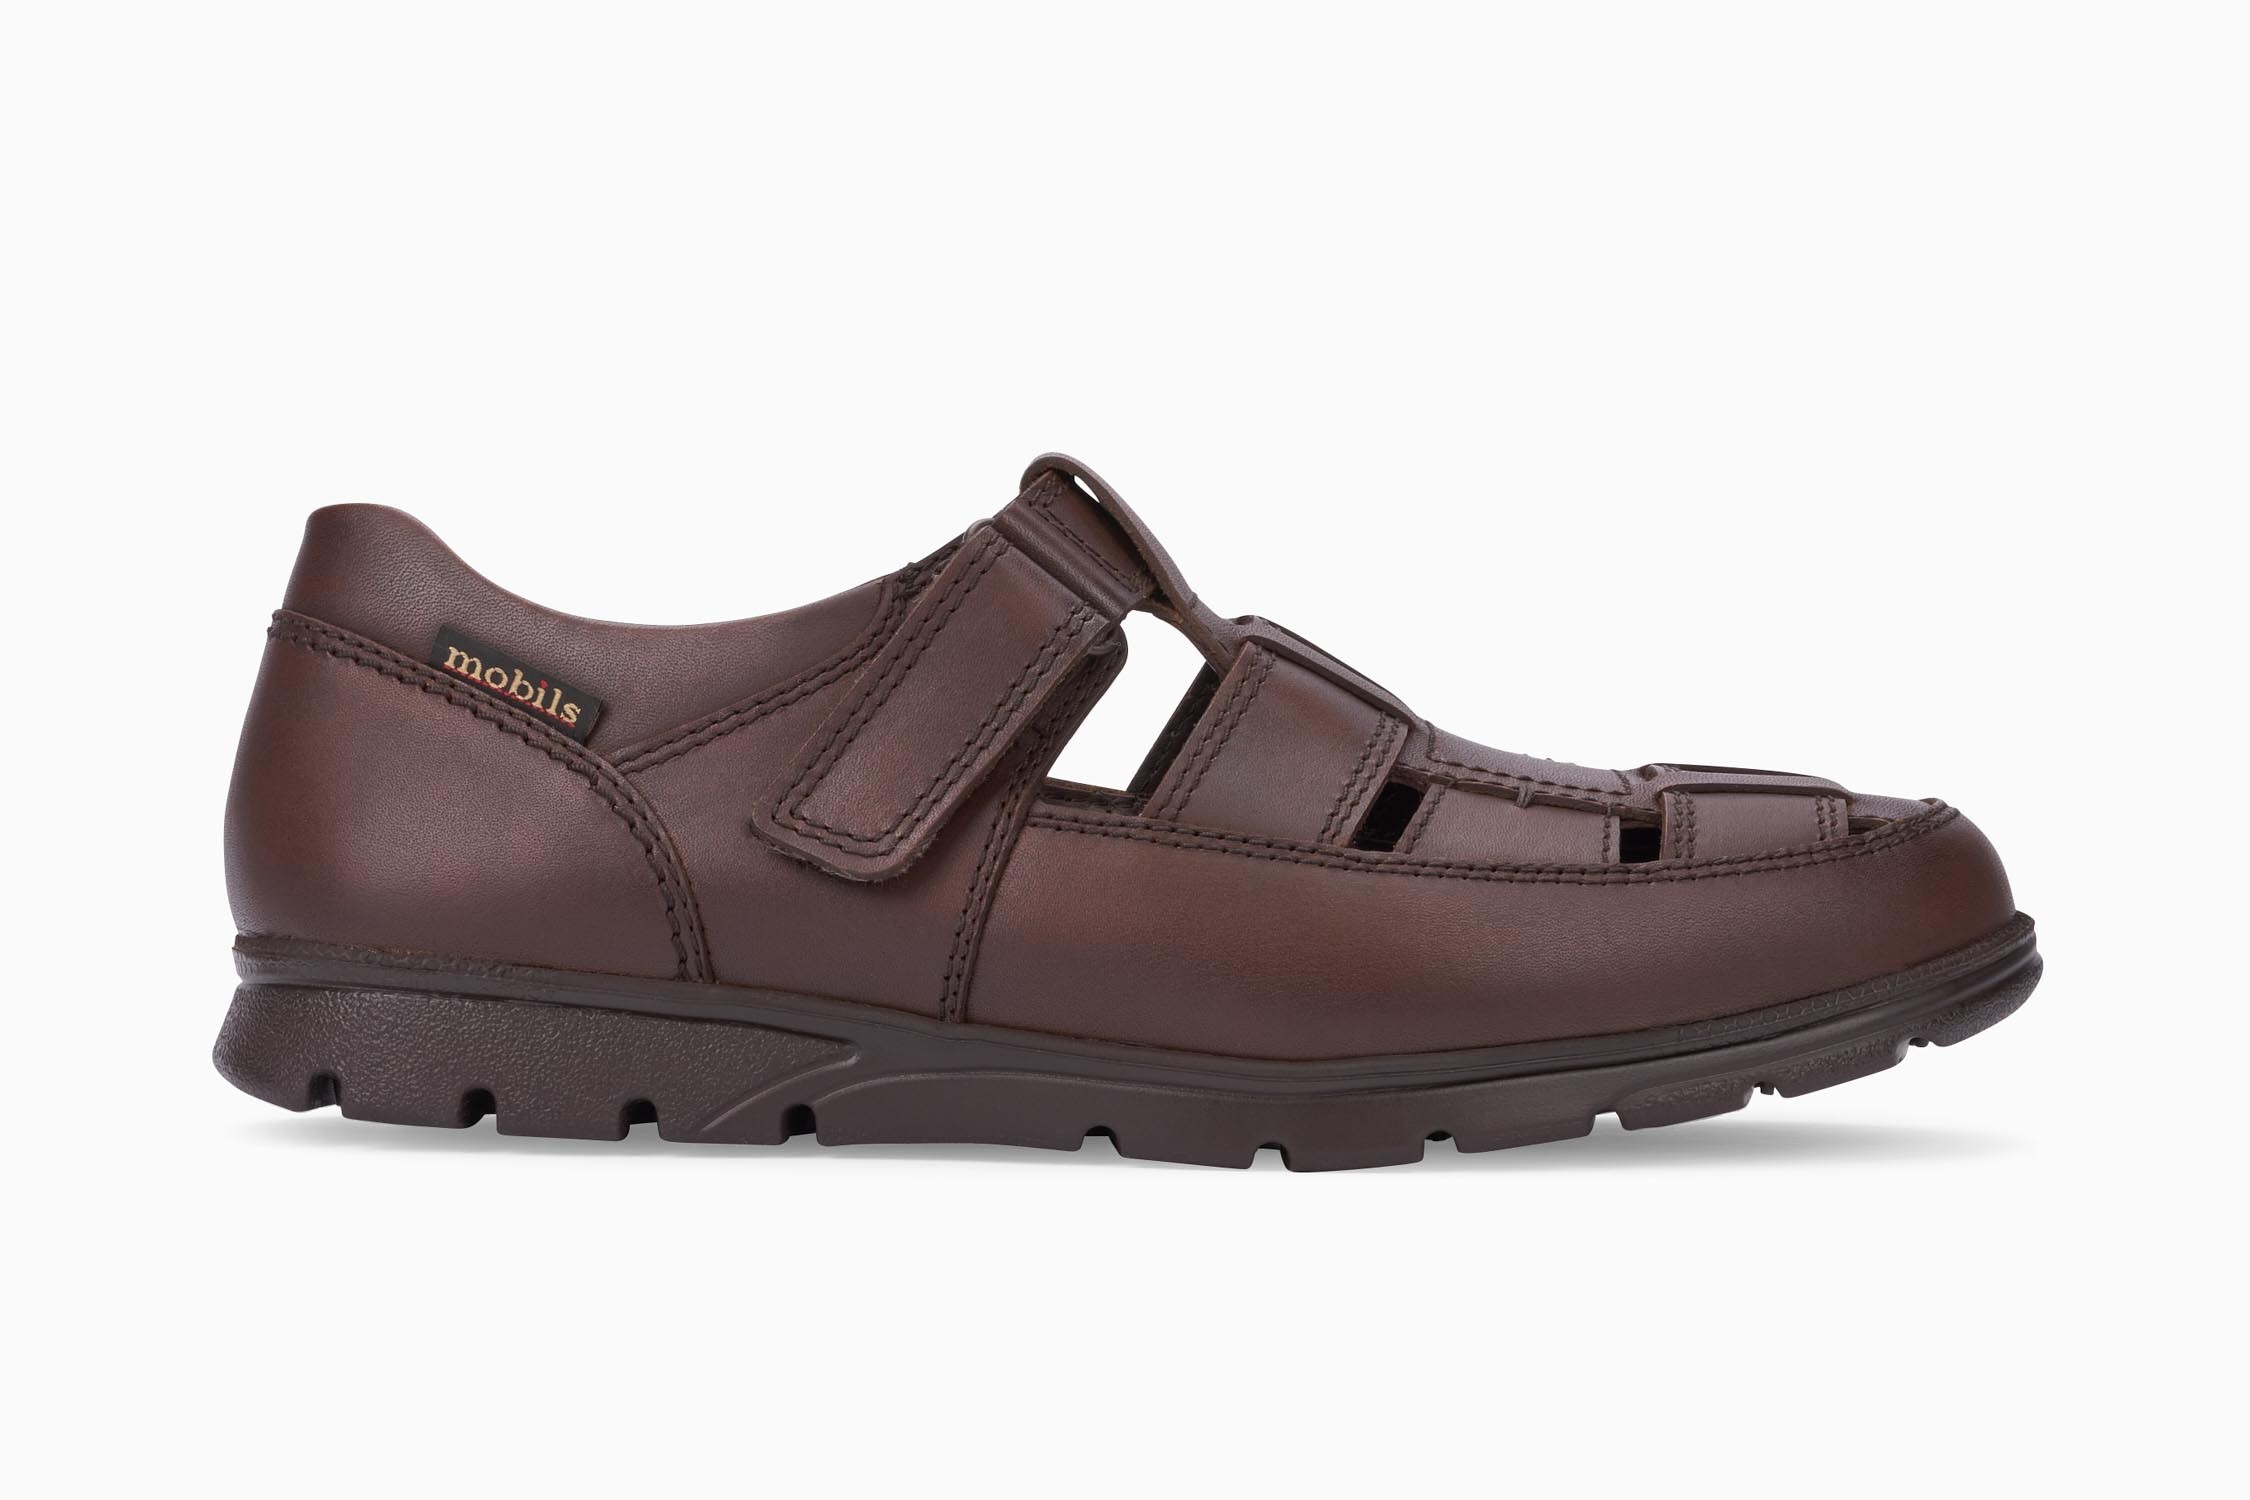 d93a22707e KENNETH Slip-on - MOBILS Men's Loafers and Slip-ons | Leather with pattern,  dark brown